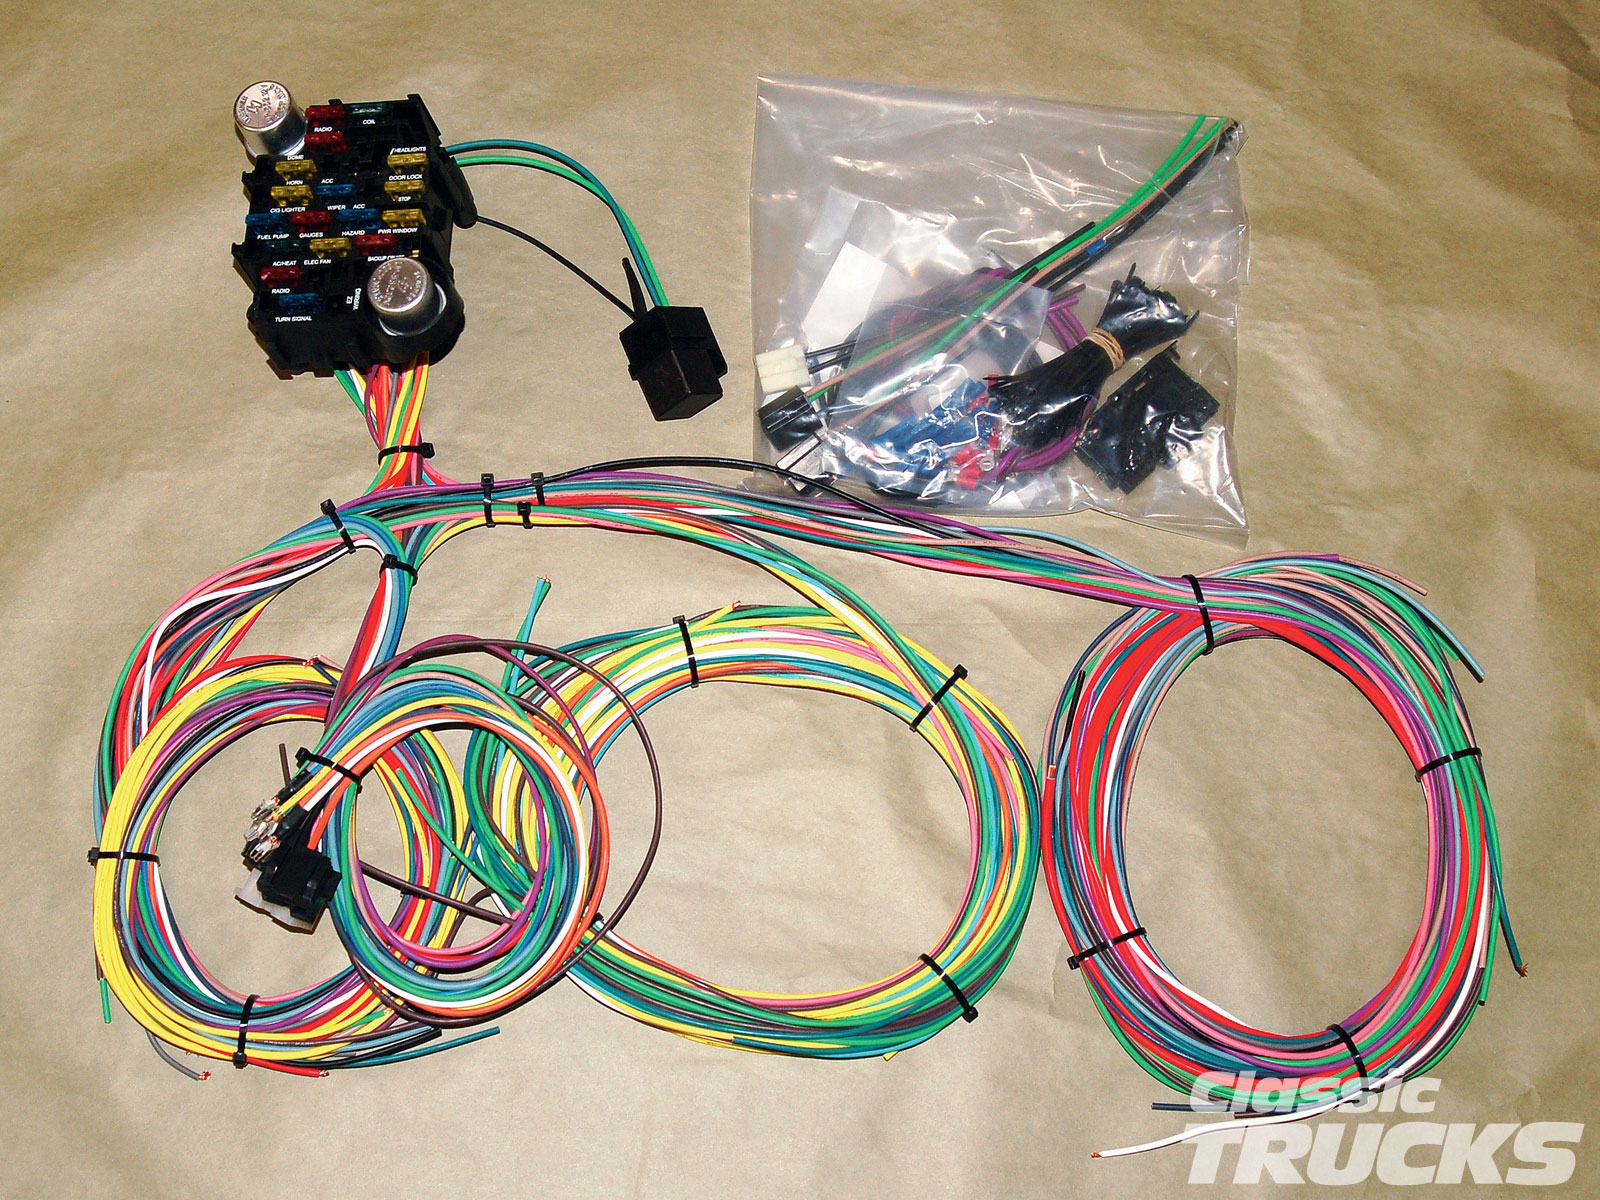 hight resolution of aftermarket wiring harness install hot rod networkaftermarket wiring harness install u2013 rewiring a classic truck st hot rod network